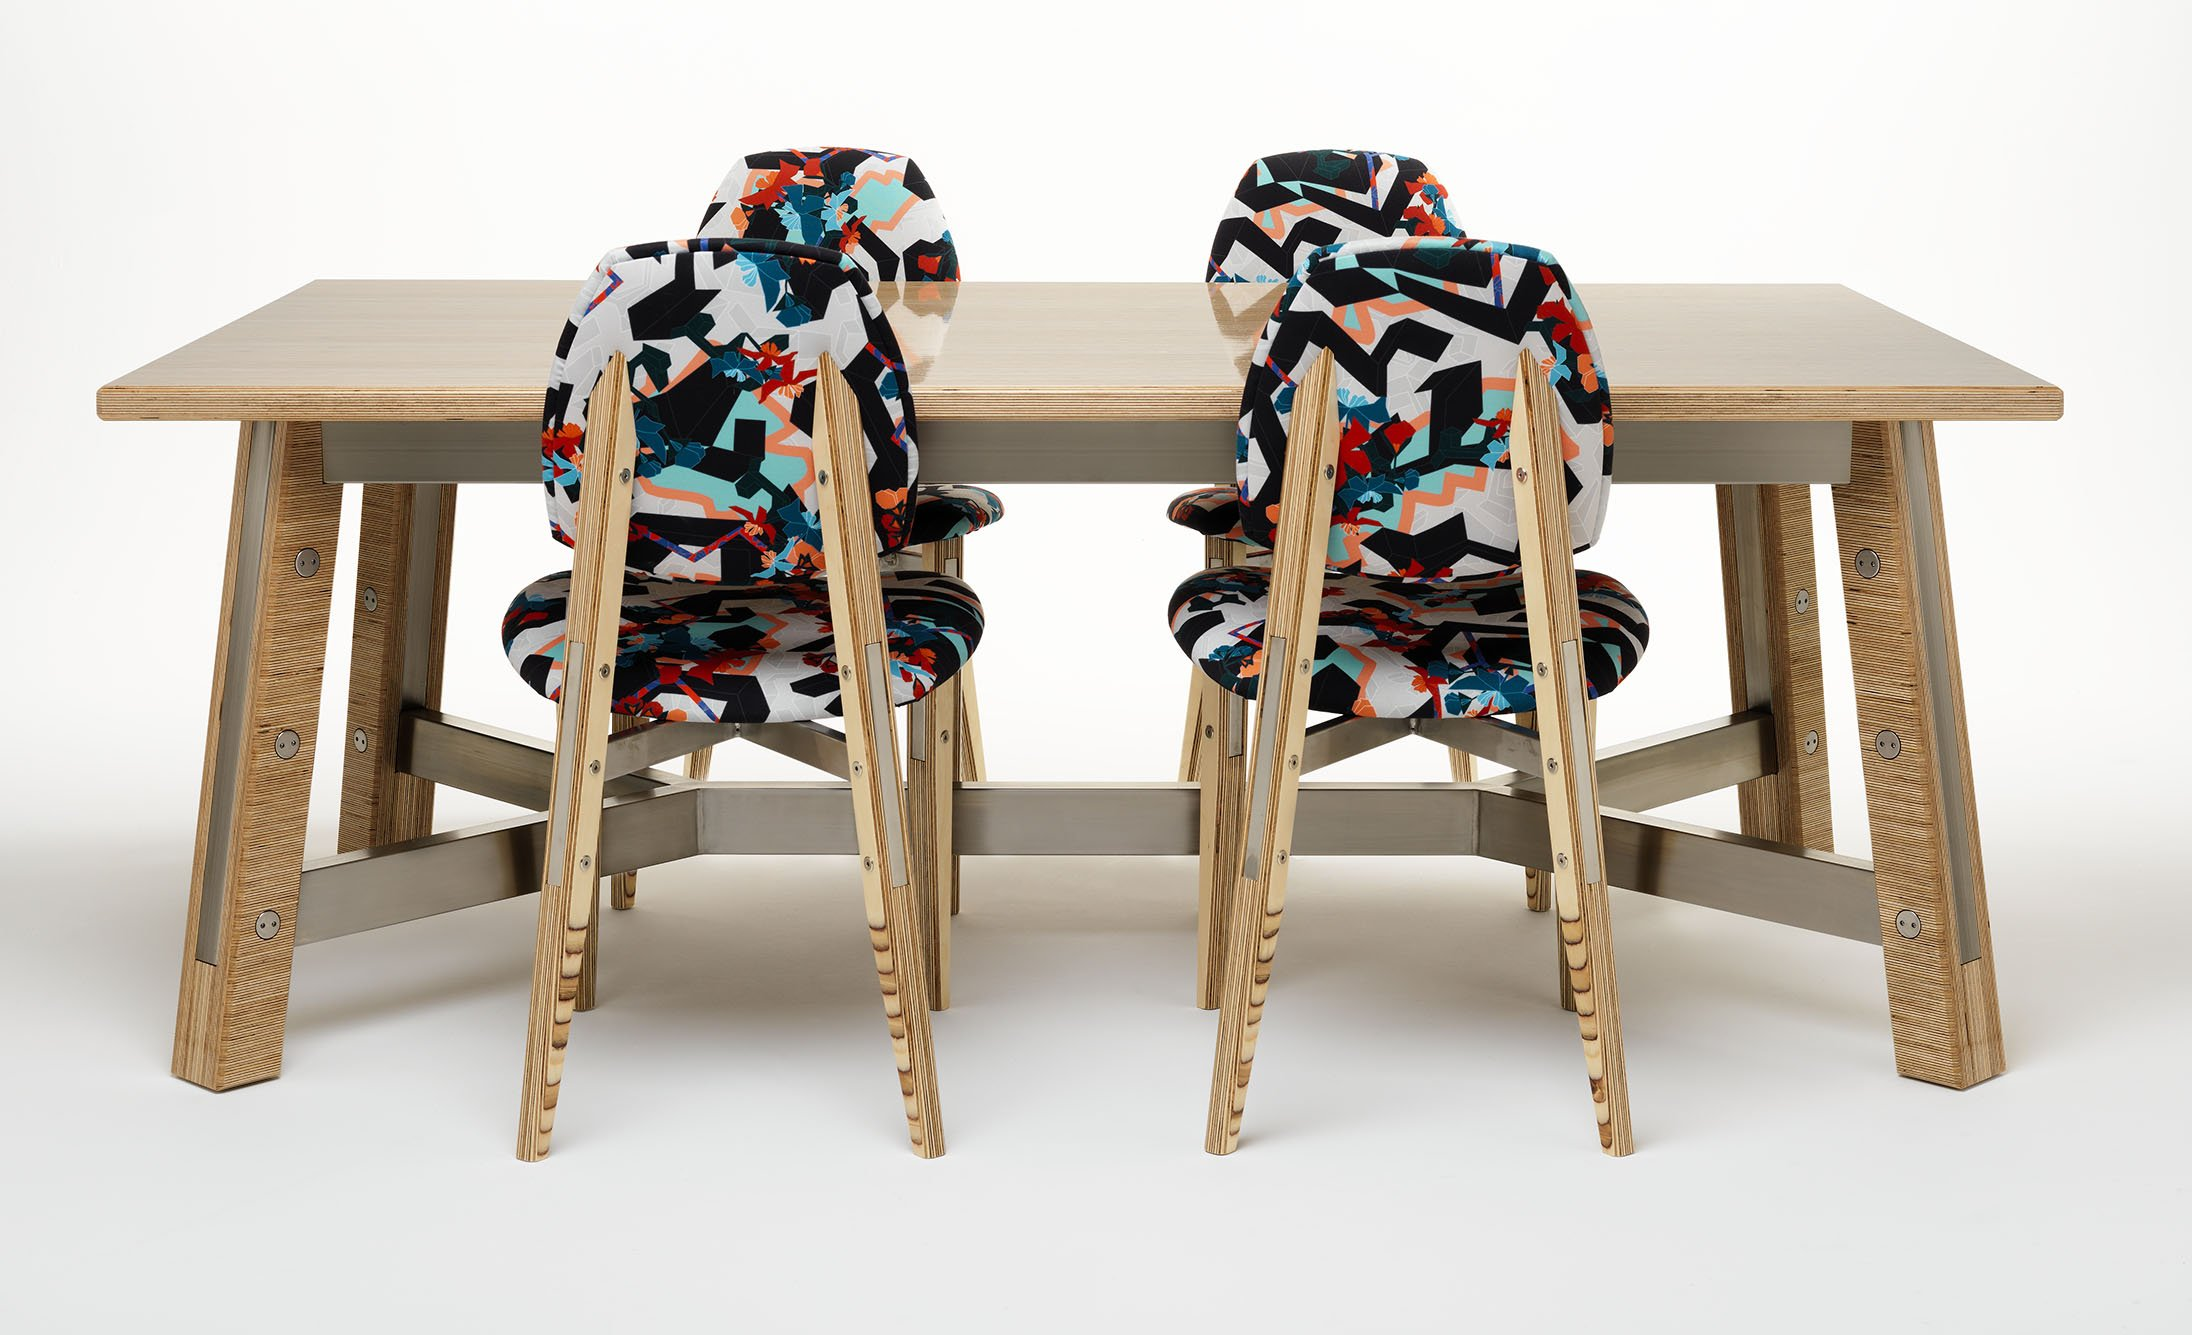 Zedex table and chairs upholstered